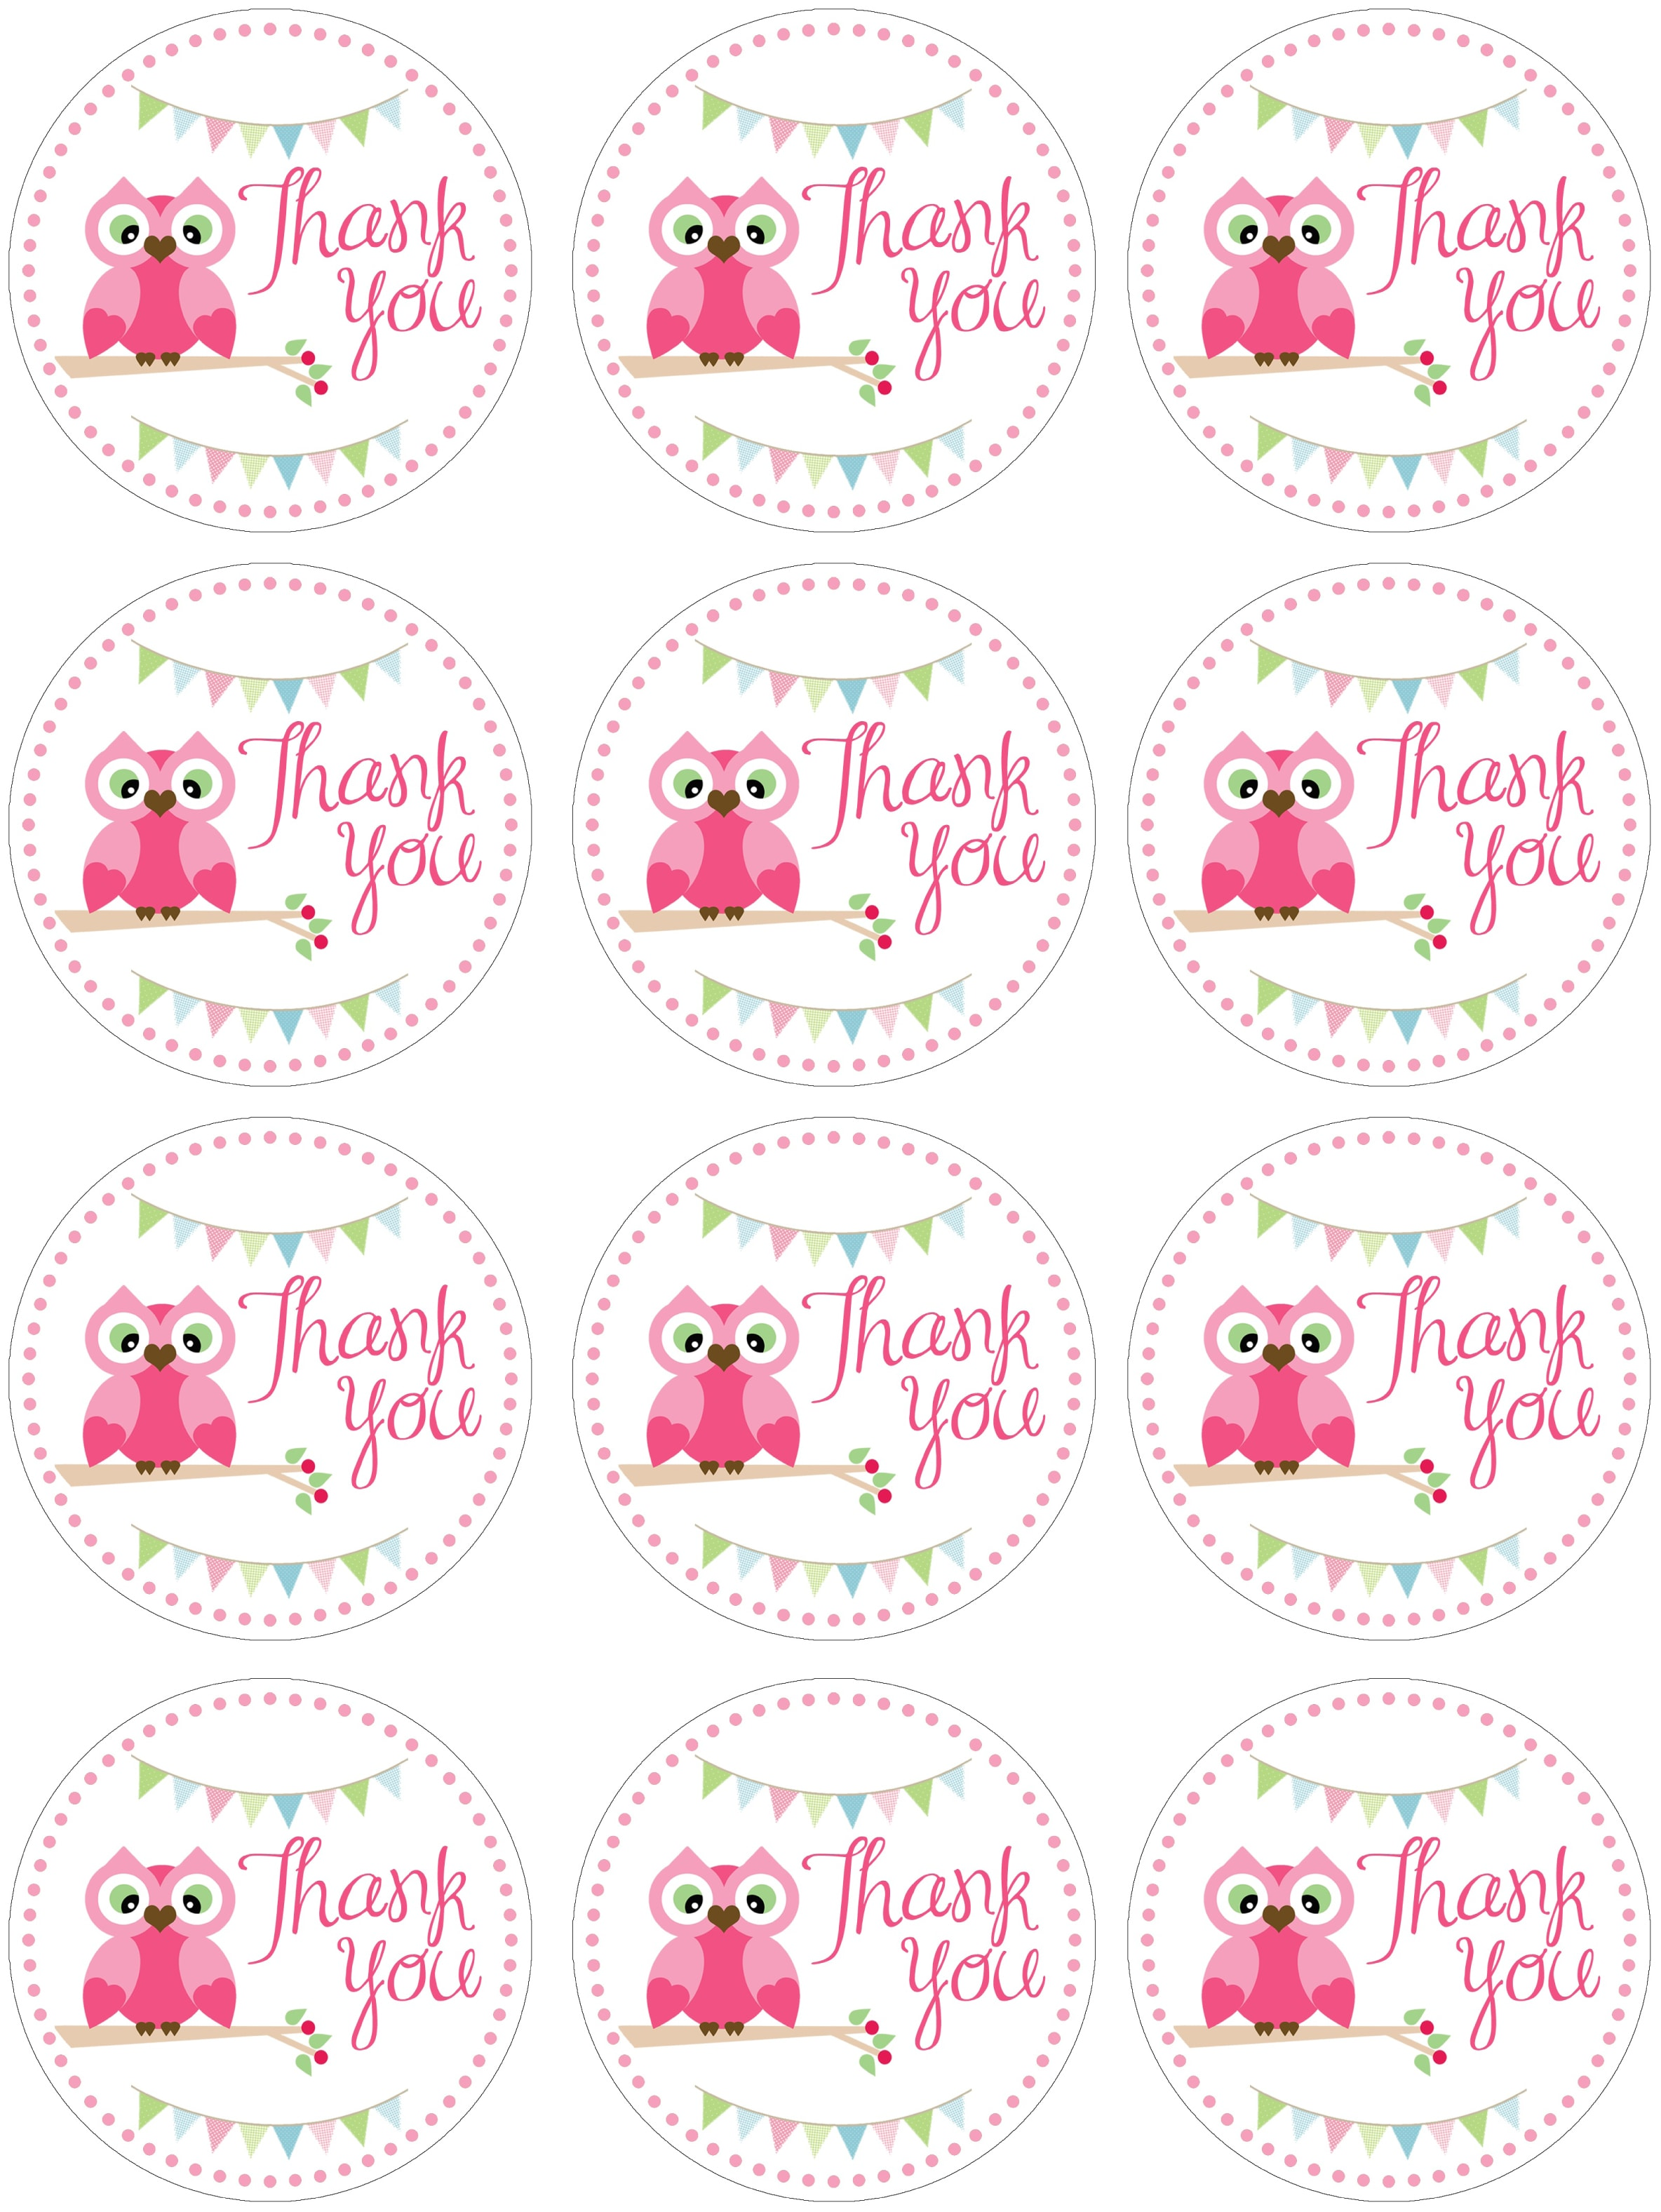 Printable Address Labels Free Brilliant Arwa Ali Xrorroxarwa On Pinterest